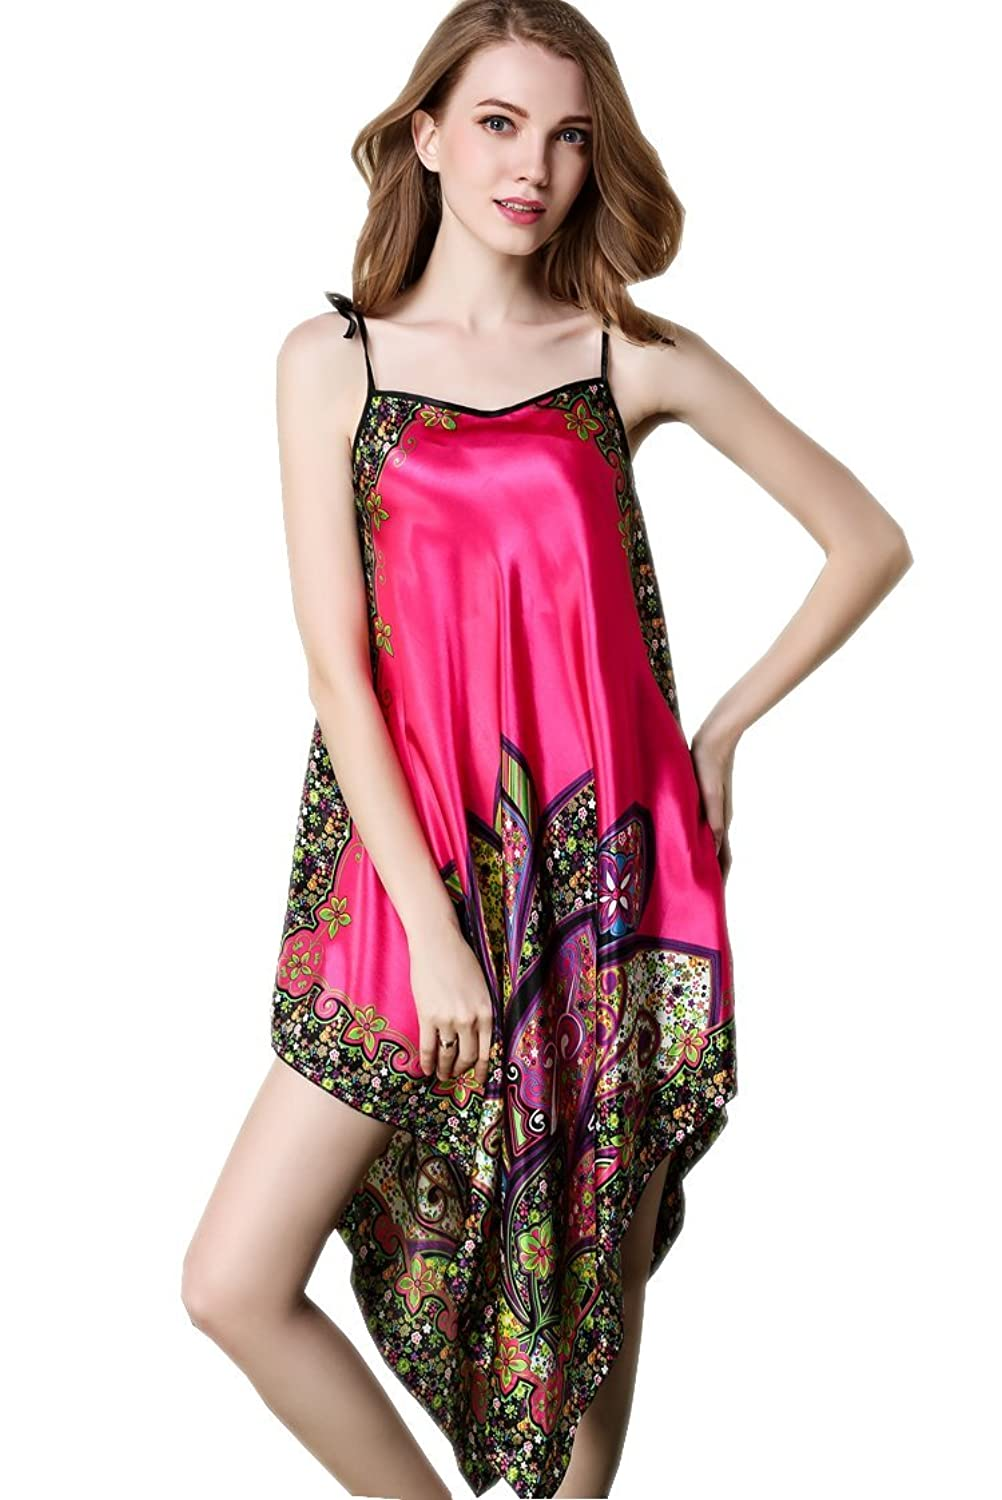 Long Pure Silk Nightgown with Lace F38 Nightgown and Robe